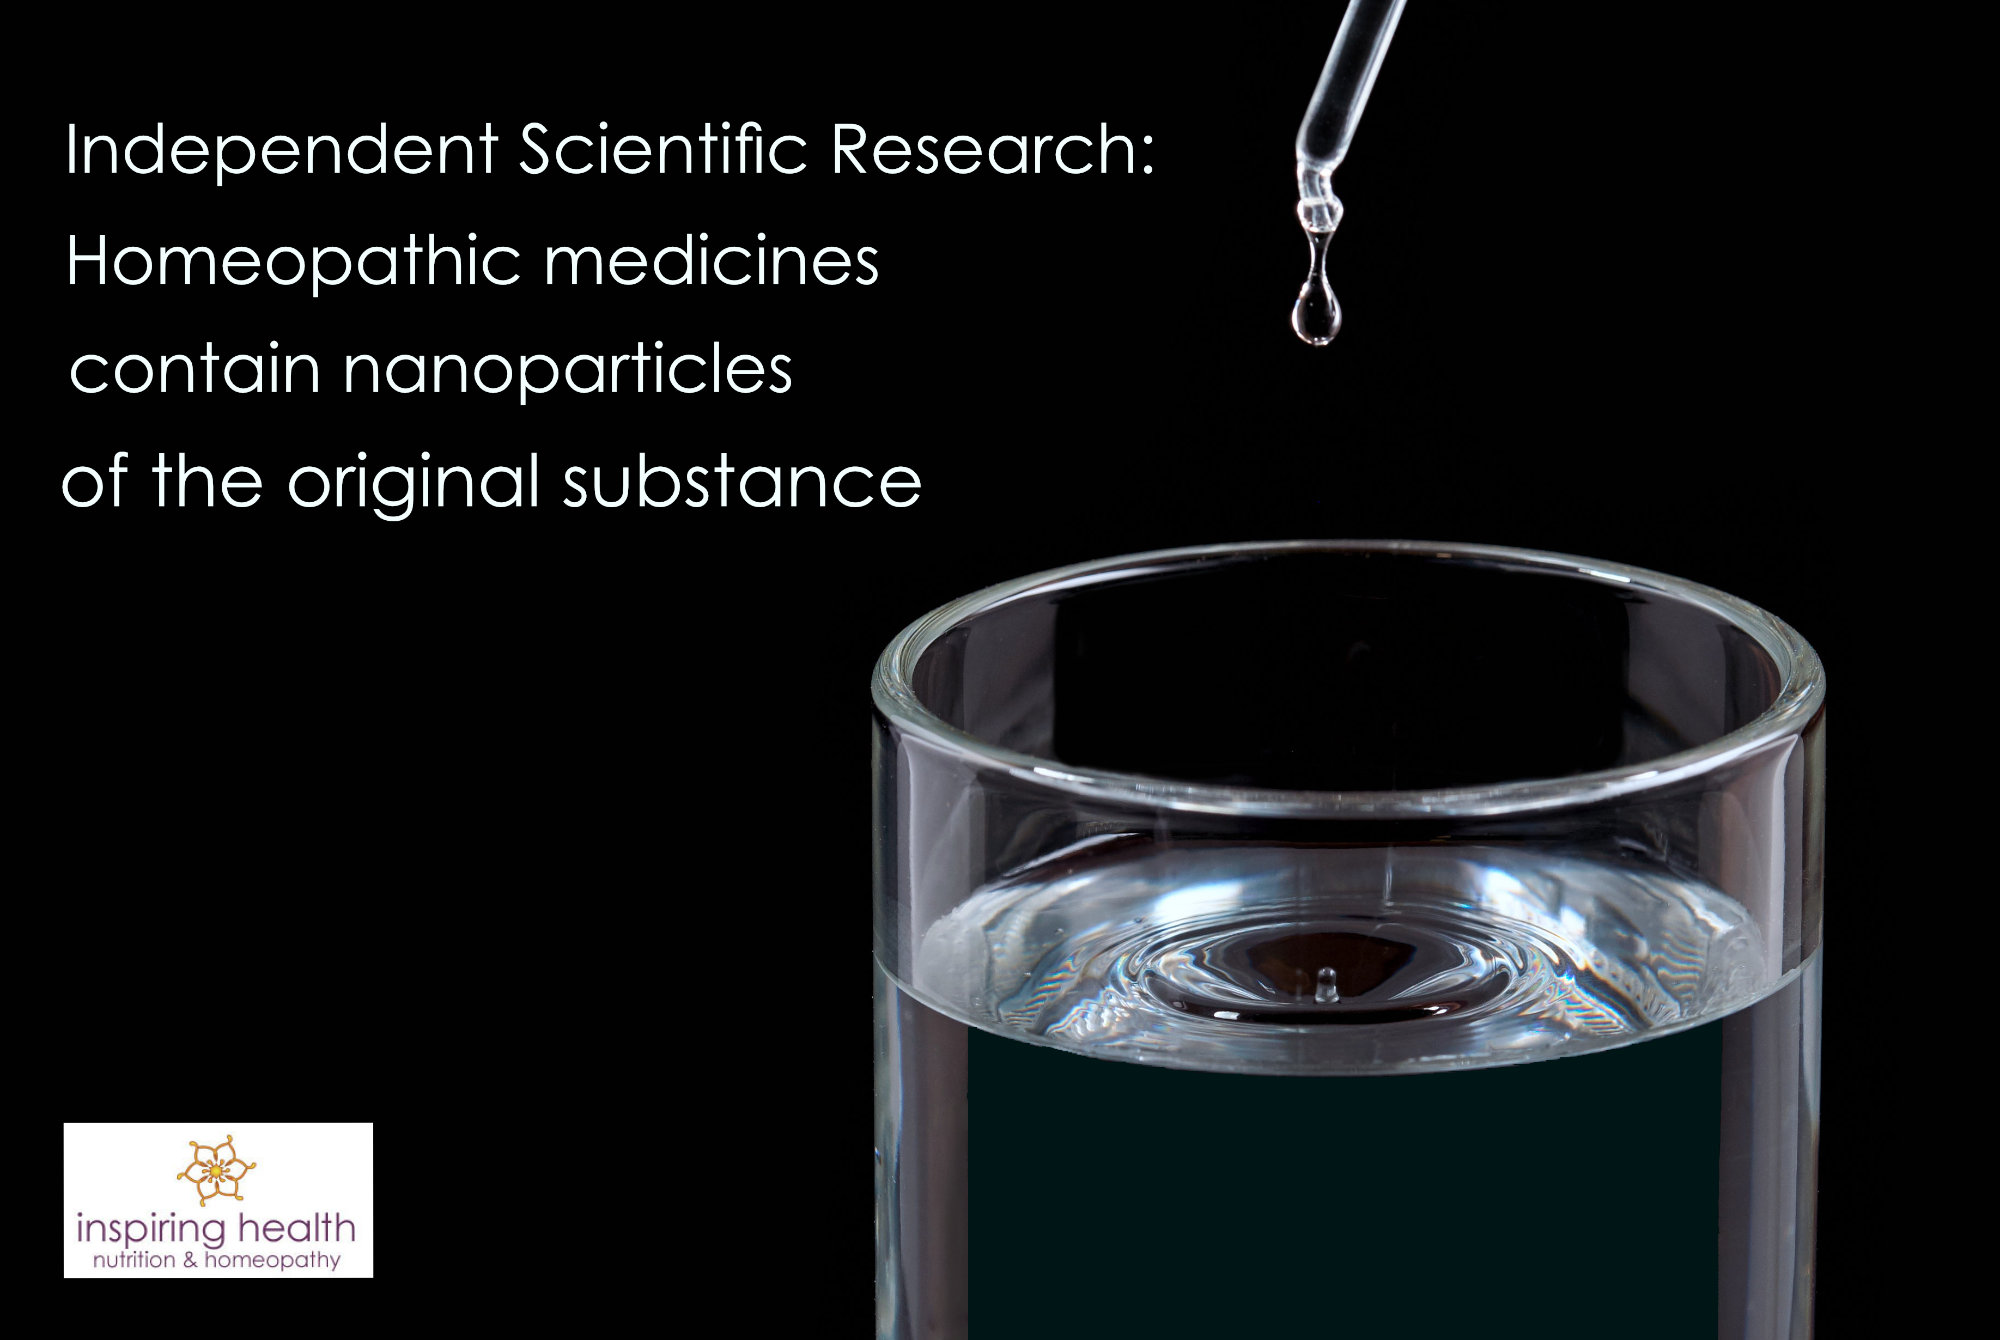 Homeopathic medicines contain nanoparticles of the original substance